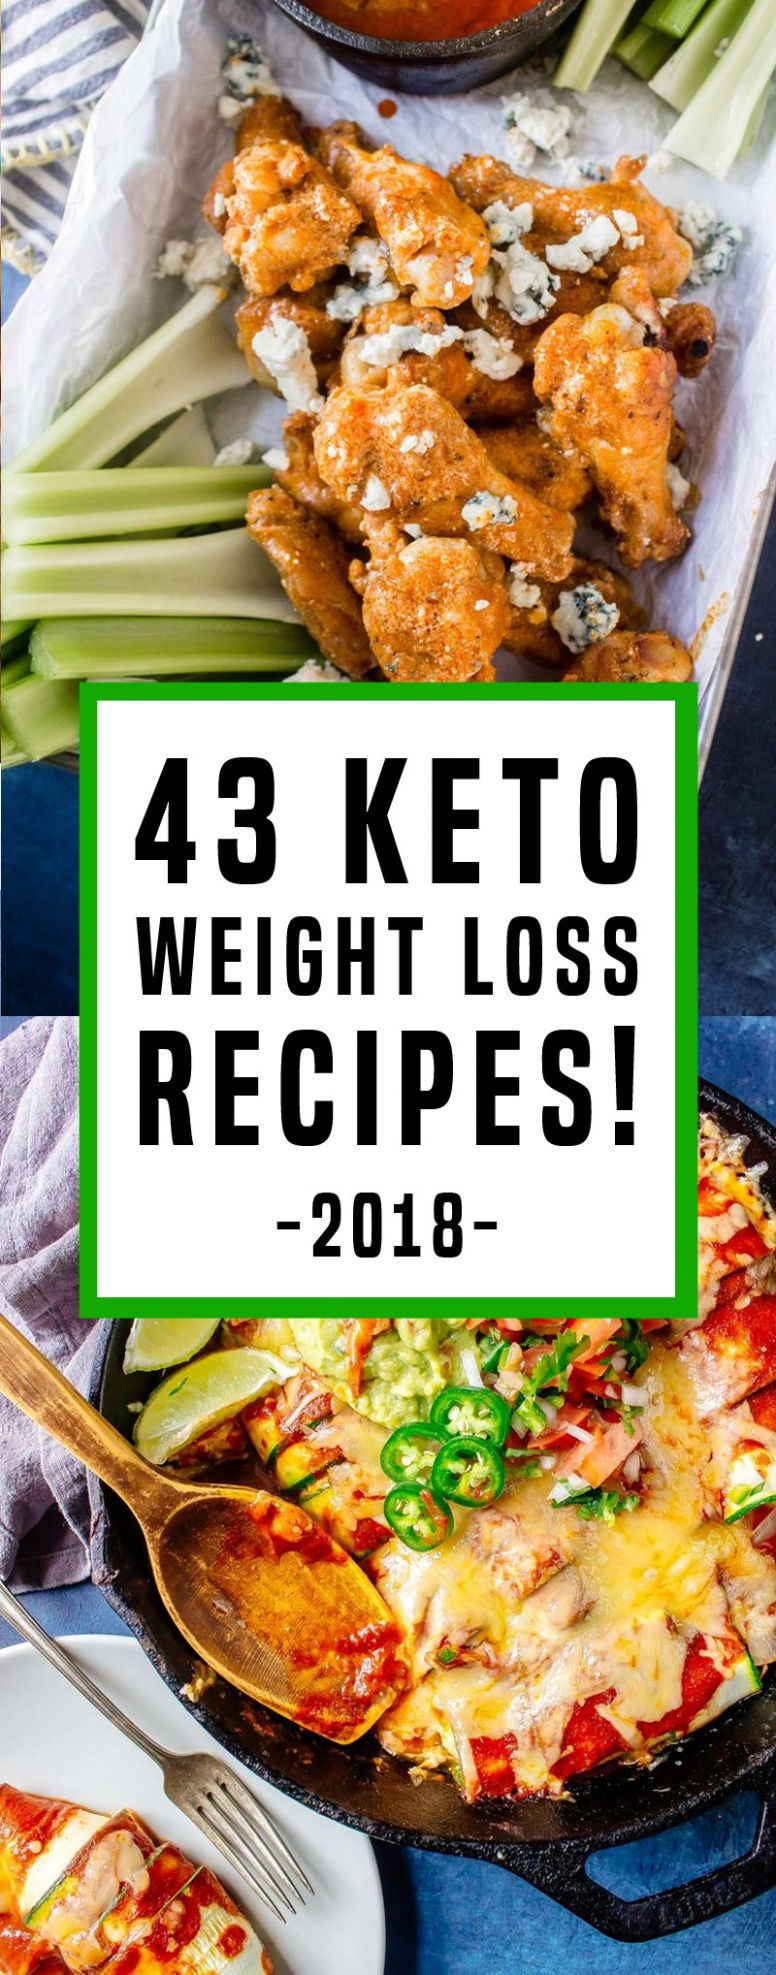 8 Keto Diet Recipes That Will Help You Burn Fat Fast In 8 ...